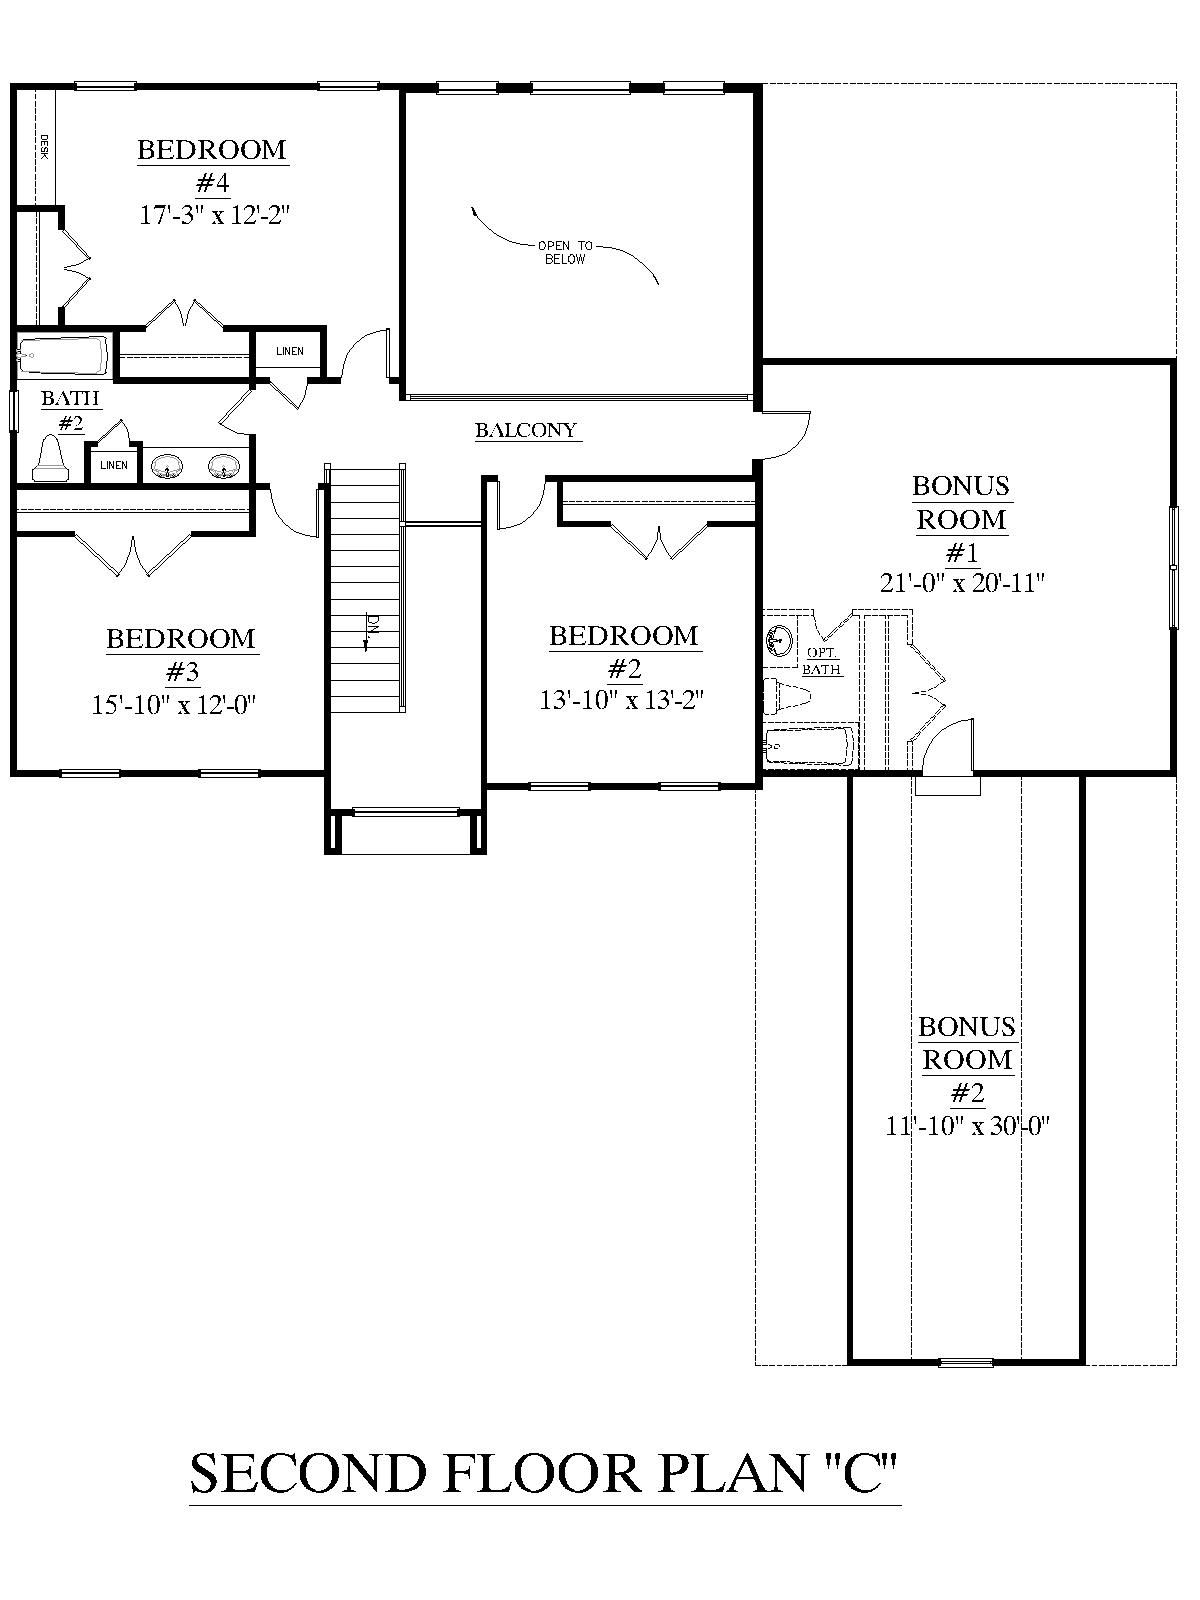 House plan 2995 c springdale c second floor plan for 3 bedroom floor plans with bonus room